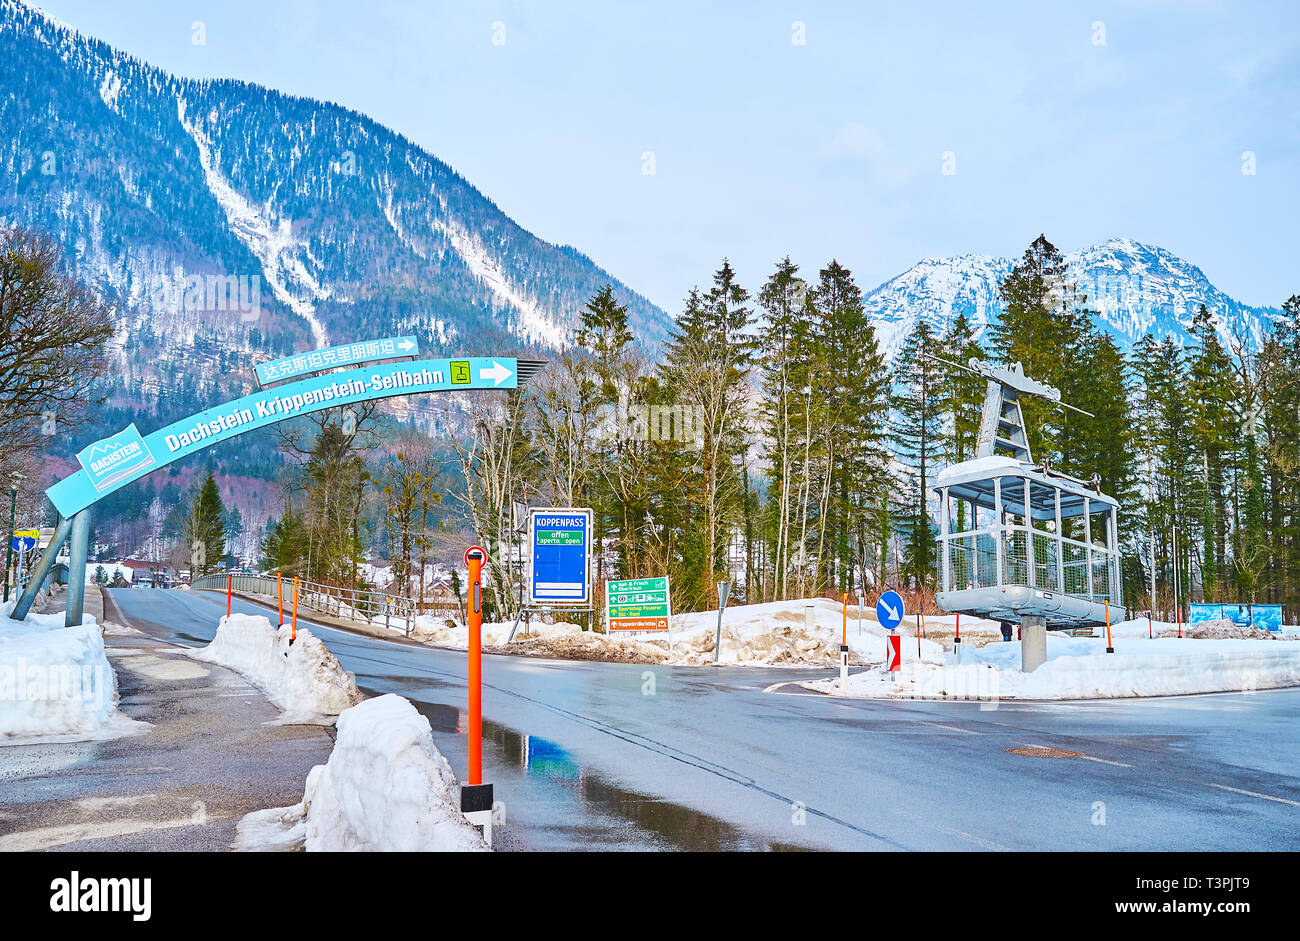 OBERTRAUN, AUSTRIA - FEBRUARY 21, 2019: The road intersection with signpost to Dachstein-Krippenstein cable car and vintage air lift gondola, as the m - Stock Image